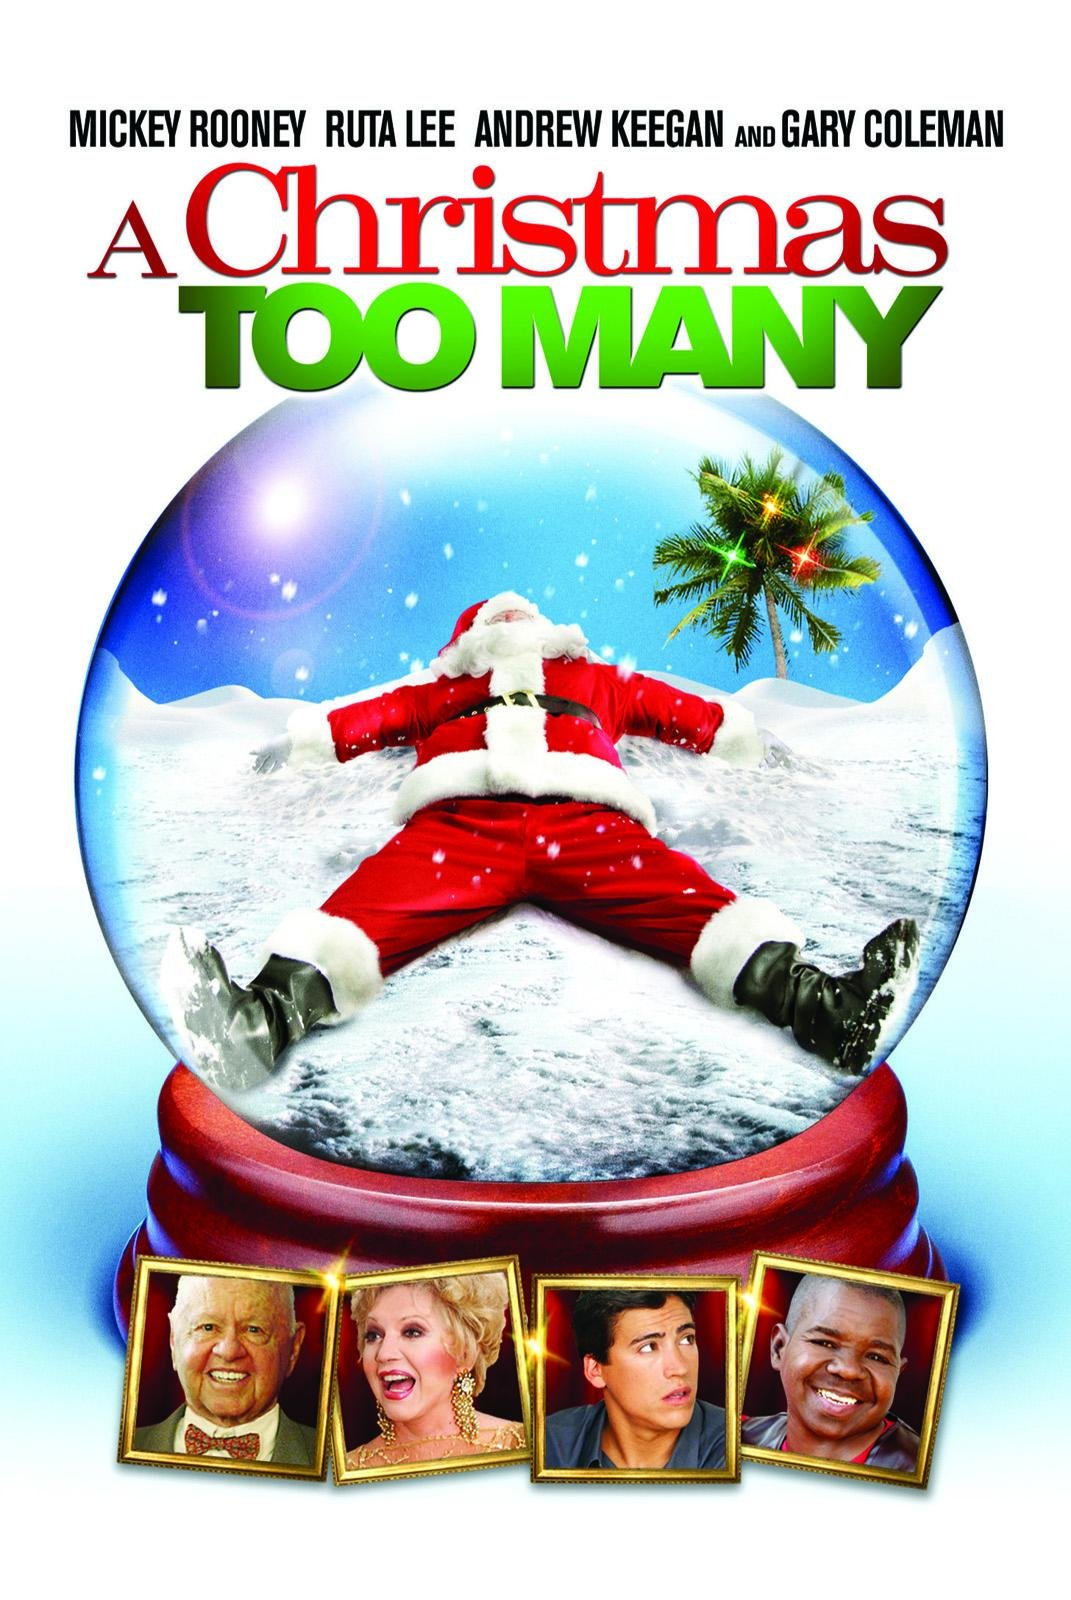 Amazon.com: A Christmas Too Many: Mickey Rooney, Ruta Lee, Andrew ...